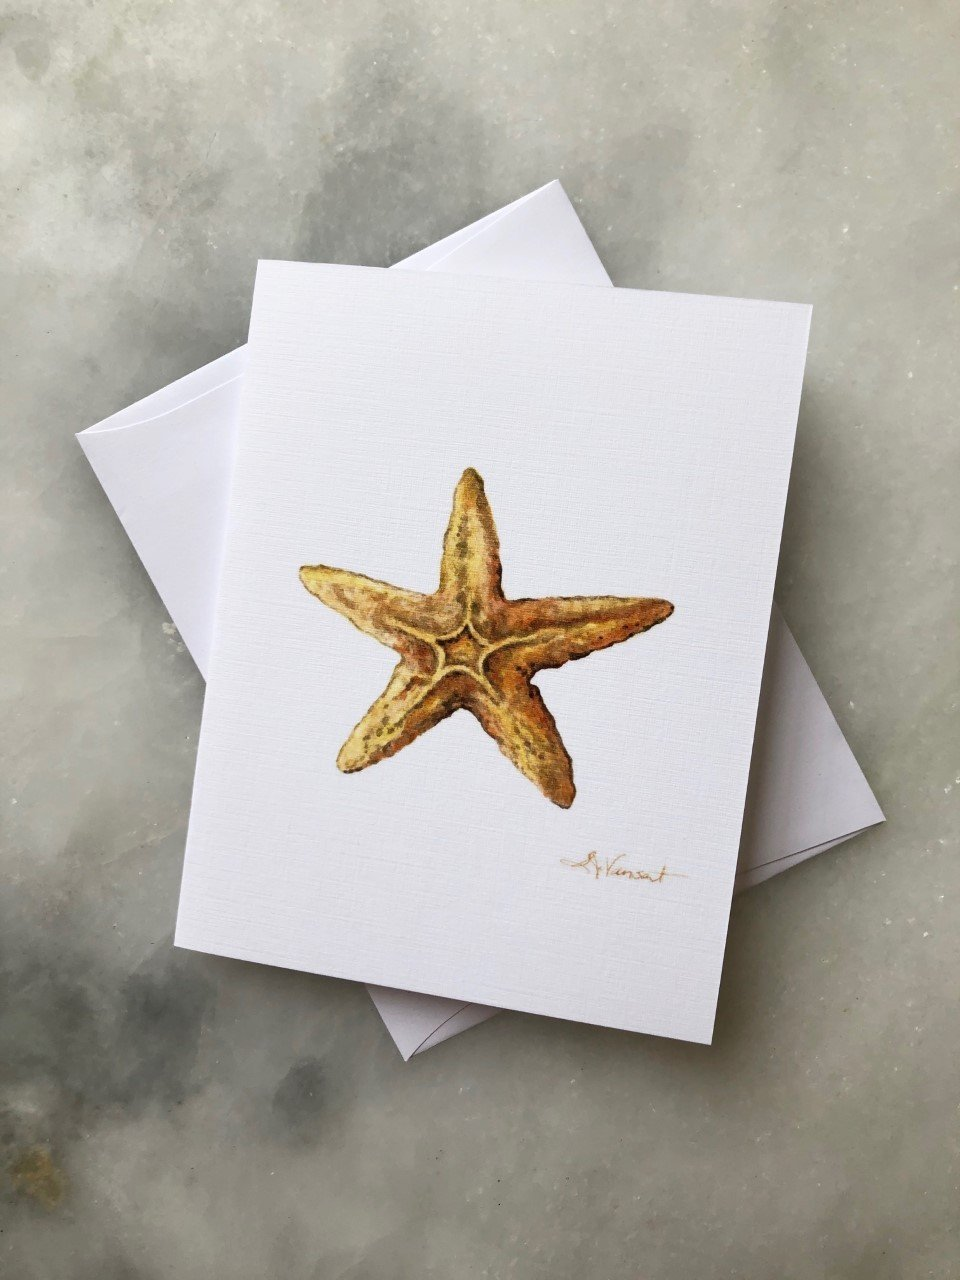 STARFISH GREETING CARD - Molly's! A Chic and Unique Boutique